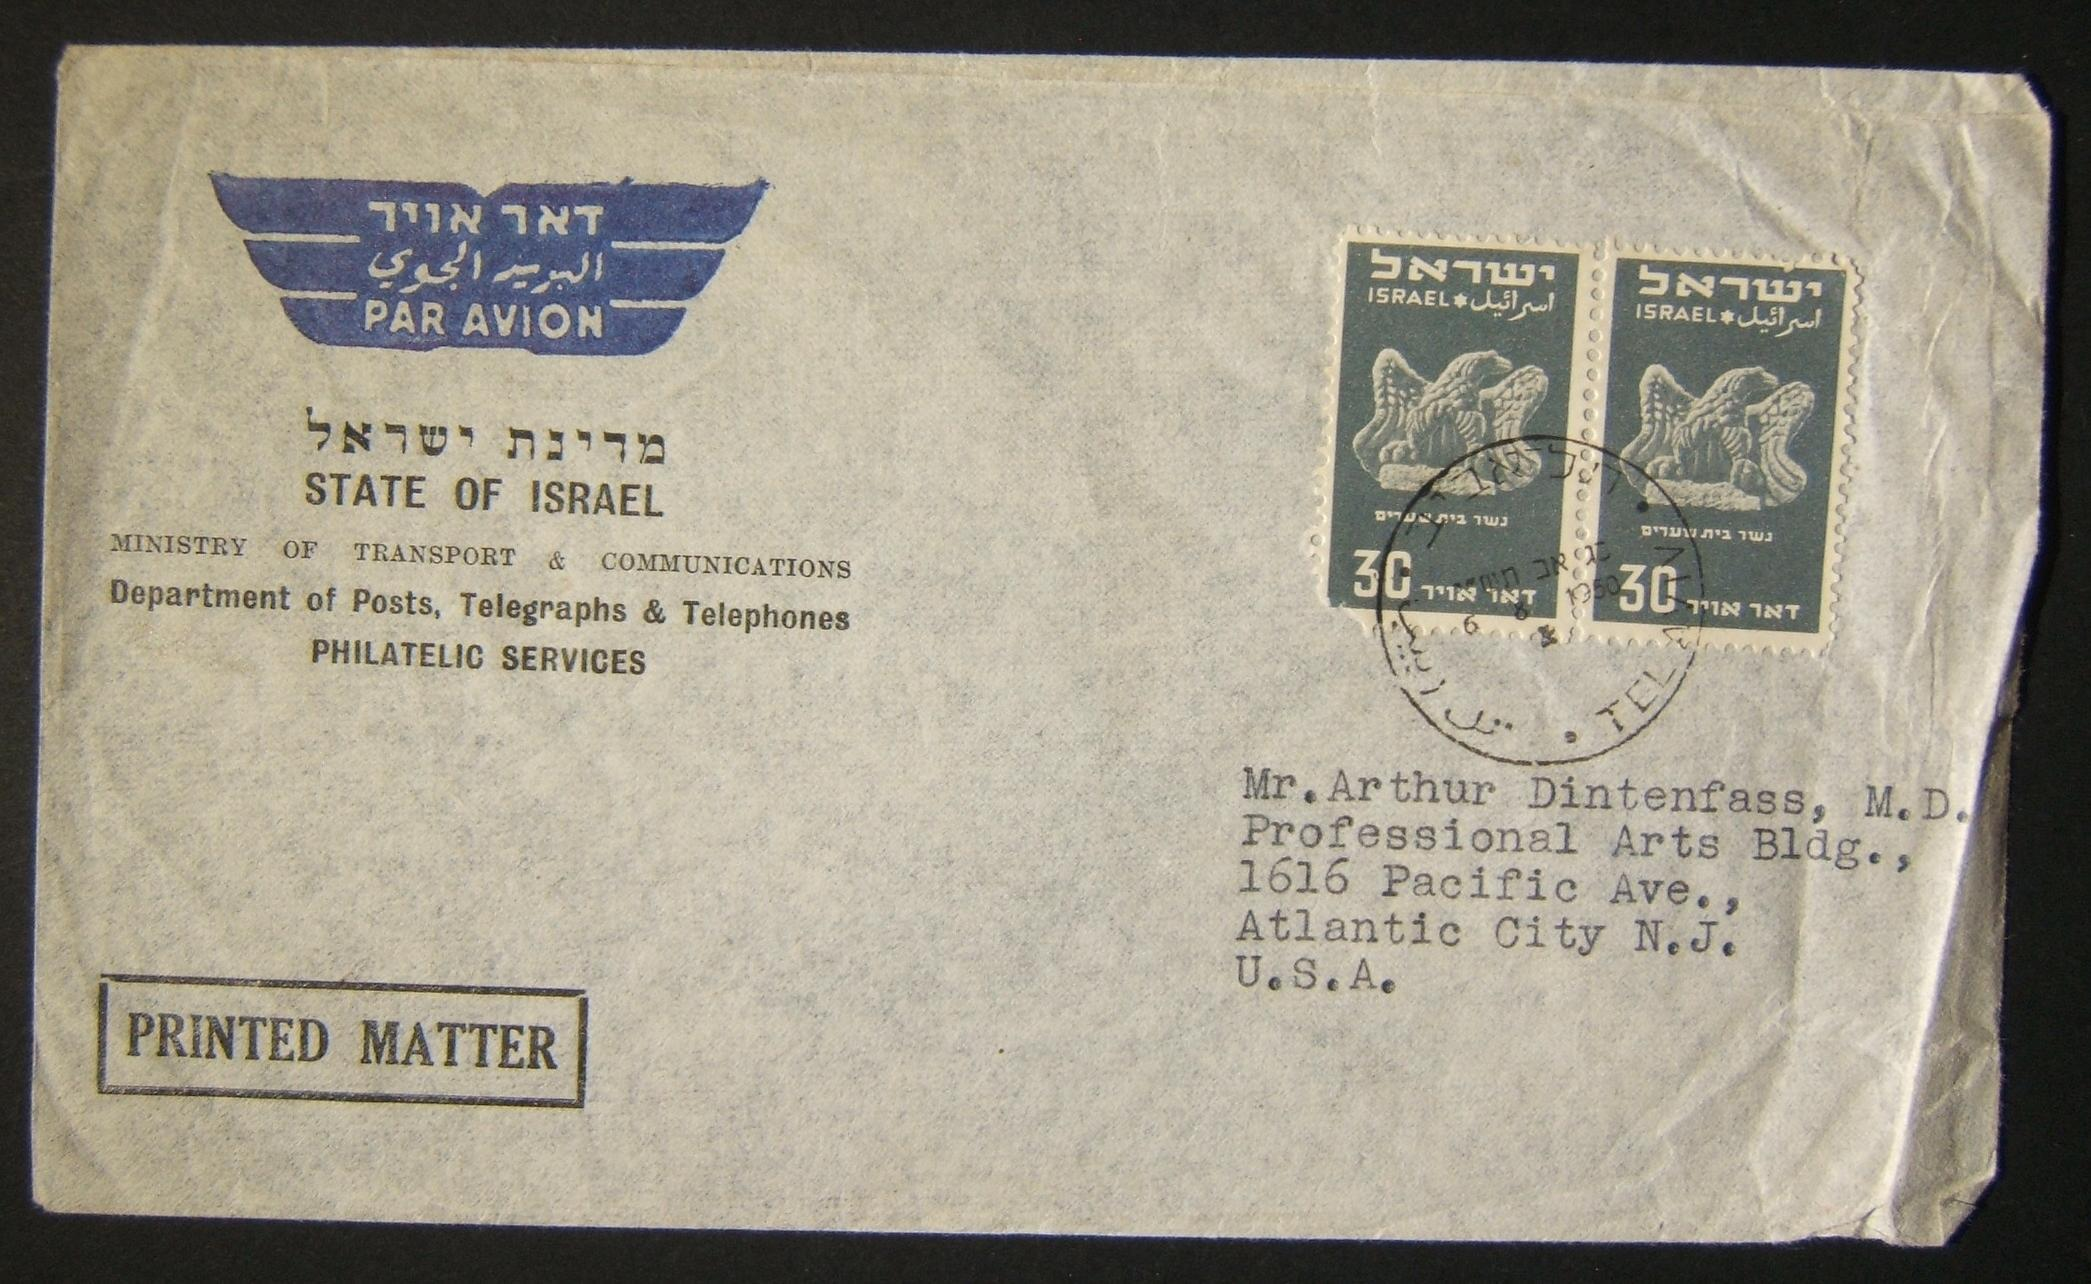 1950 1st airmail / PO's, rates & routes: 6-8-1950 government airmail stationary printed matter cover ex TLV (Philatelic Service) to NEW JERSEY franked 60pr at the FA-2a period pm r